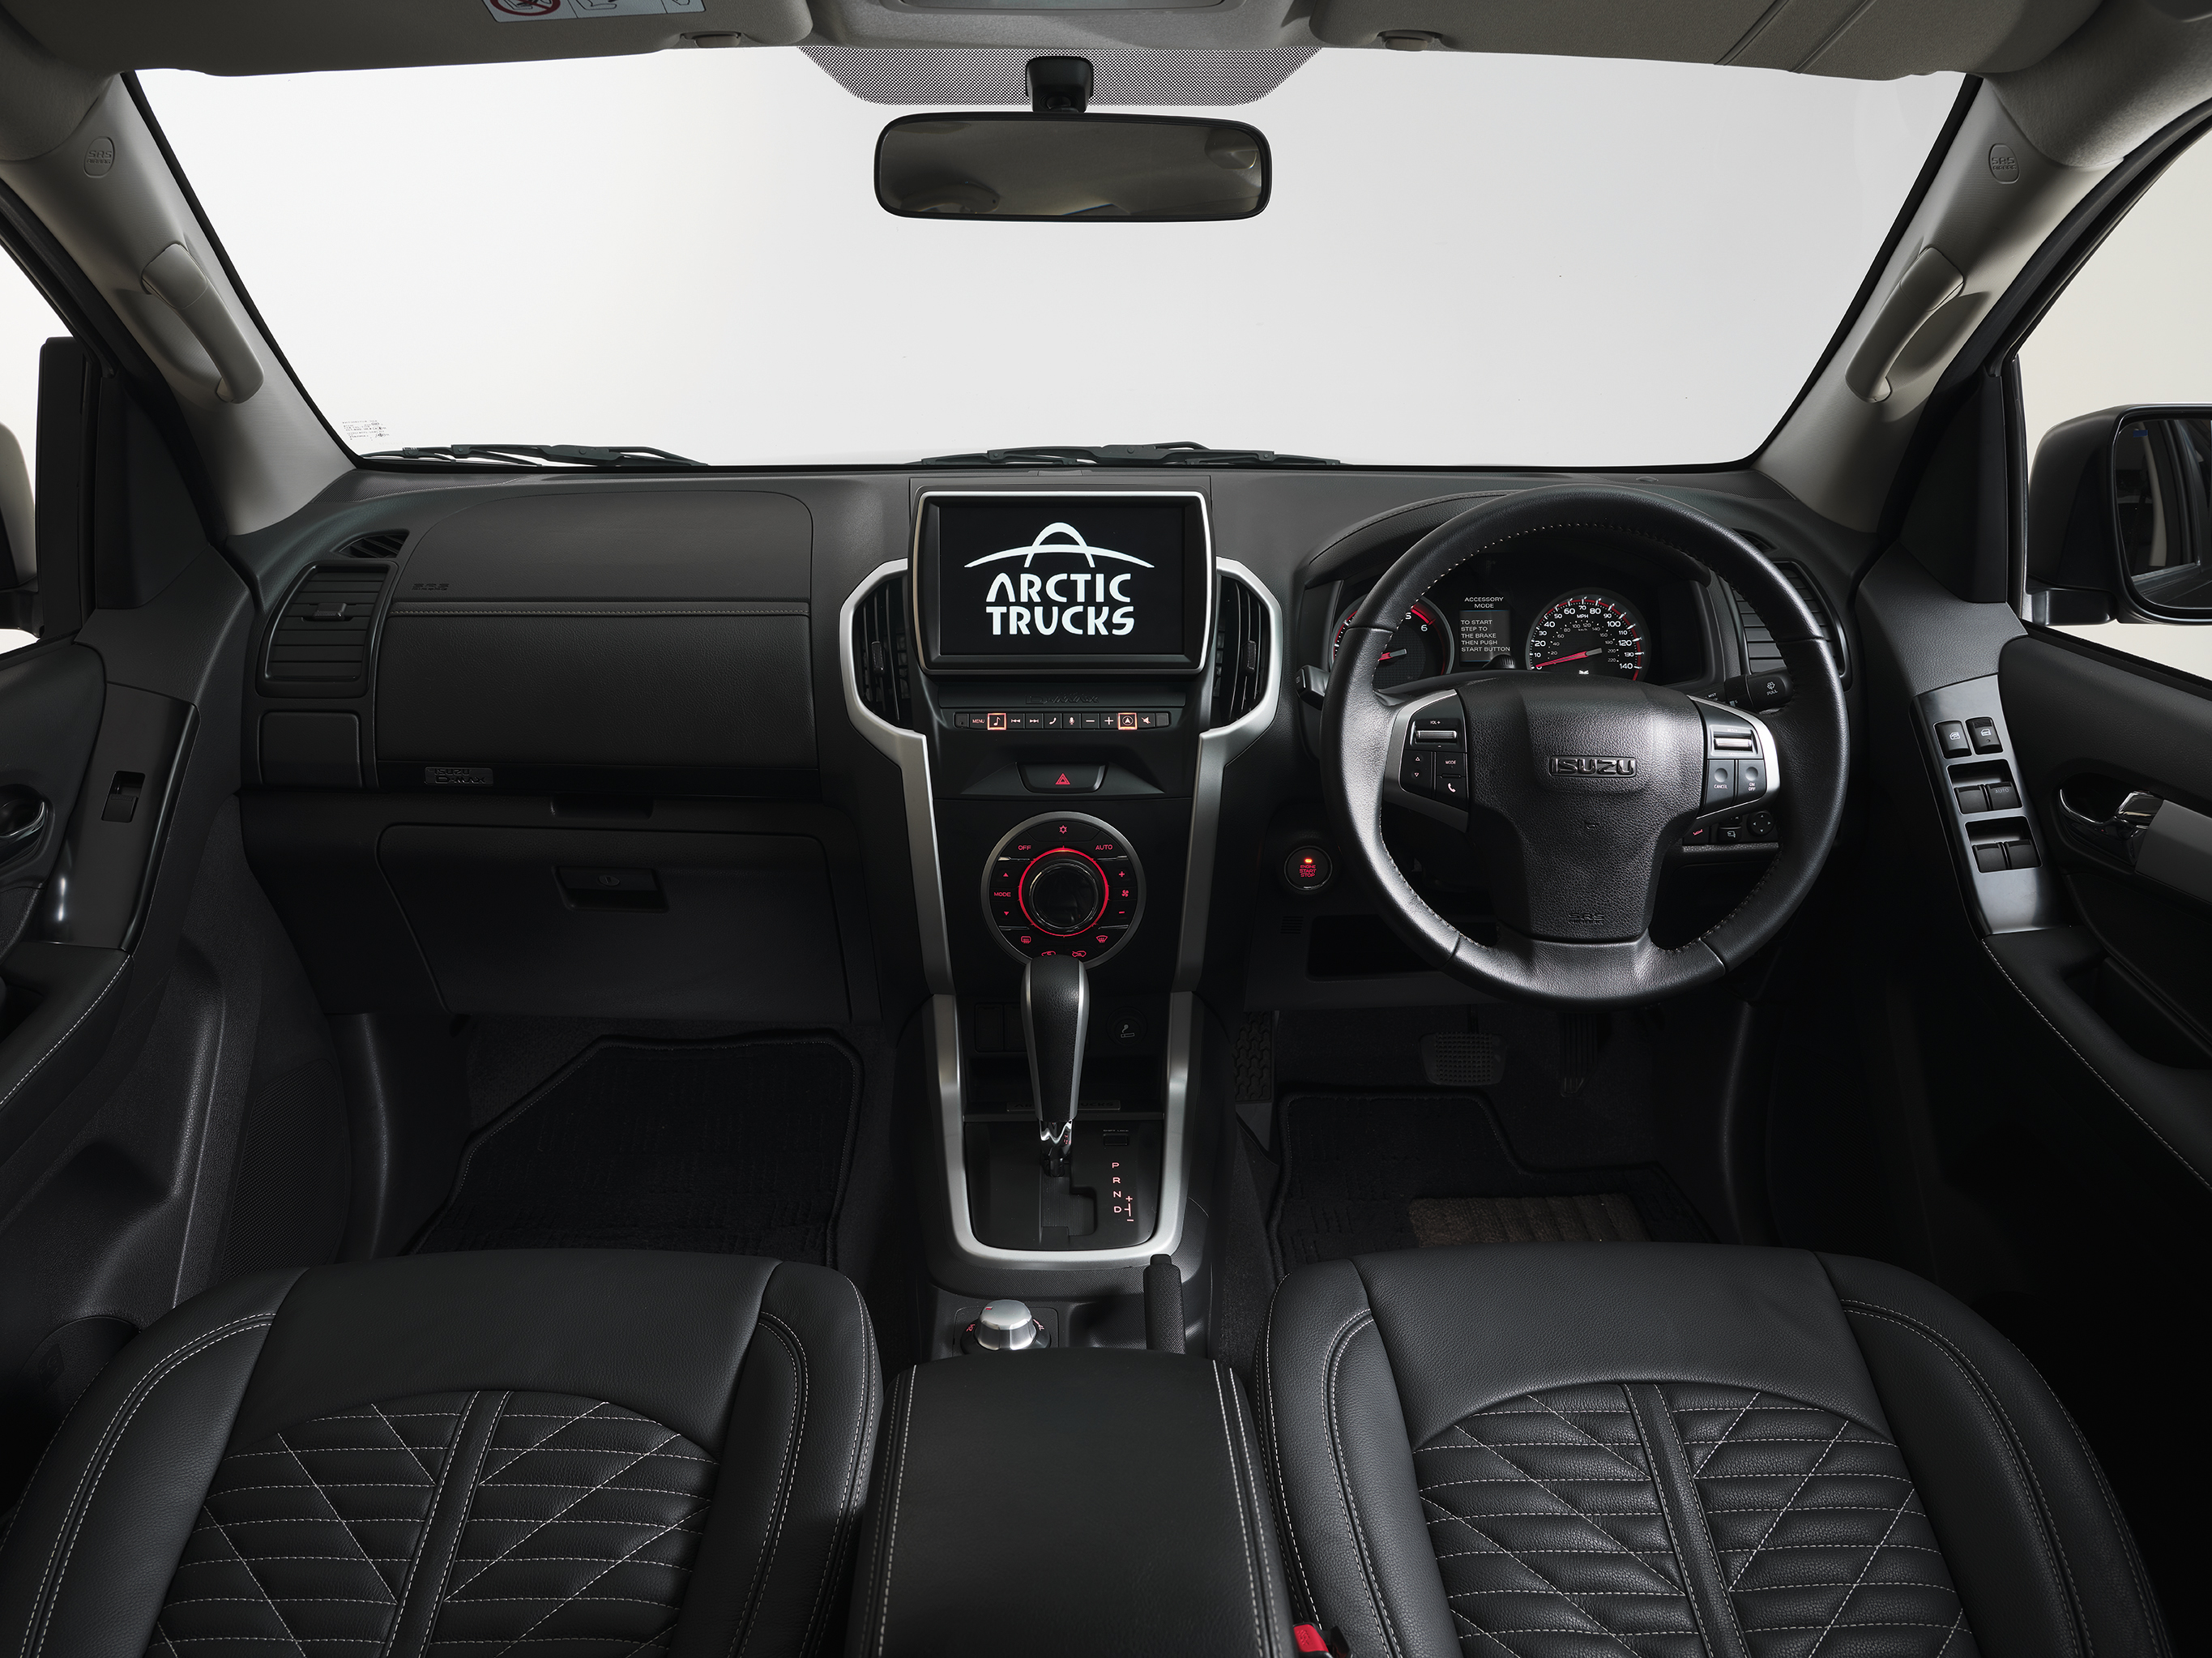 Entertainment features of the Isuzu D-Max Arctic AT35